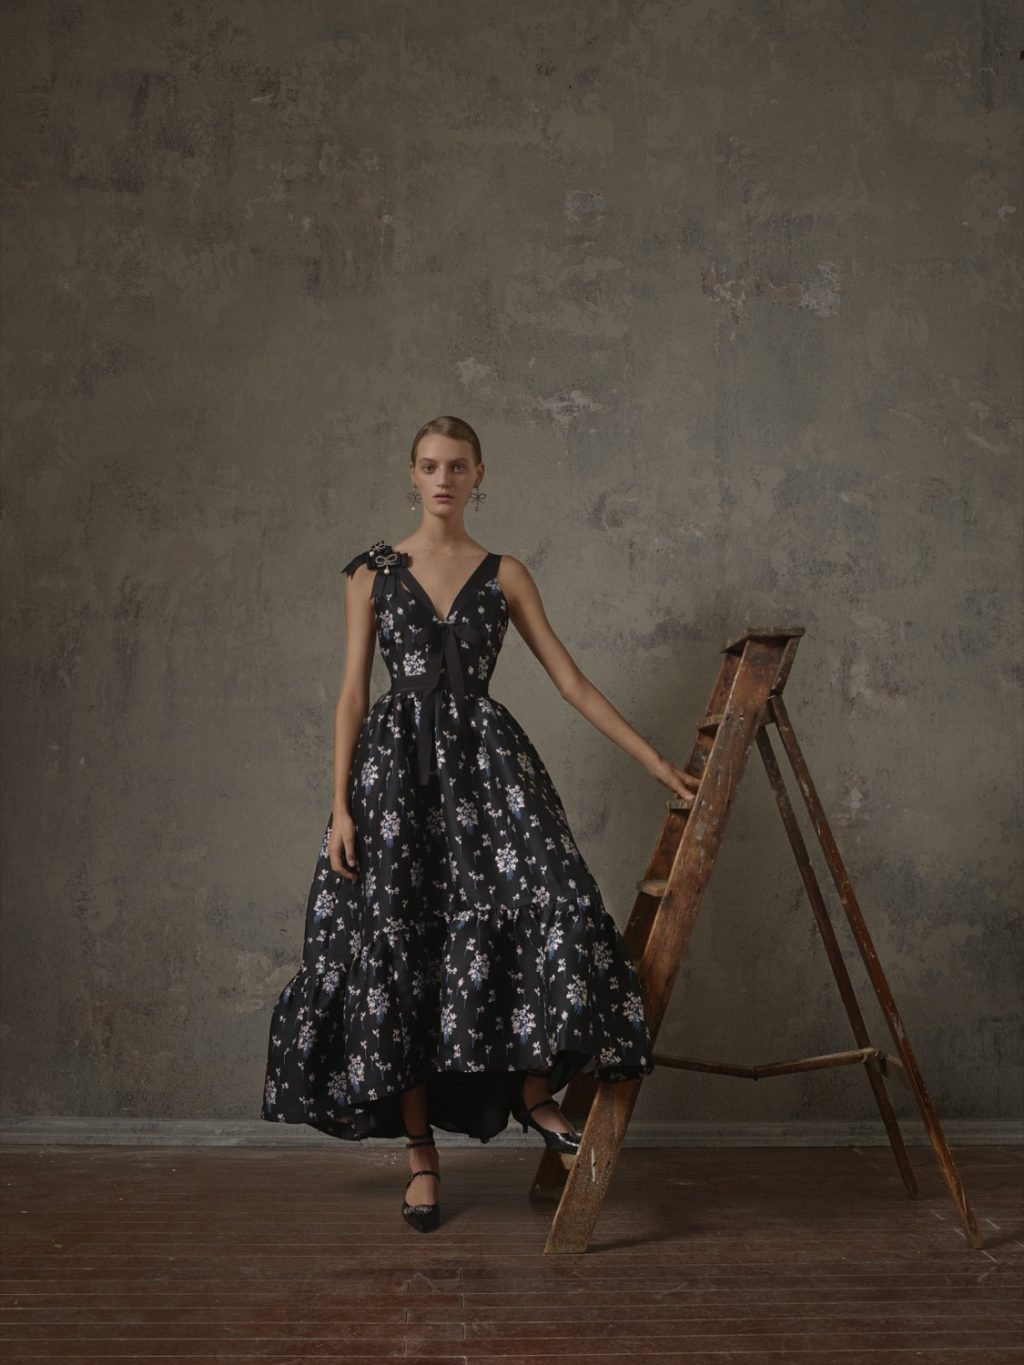 Here Is Every Single Piece from the Erdem x H&M Collection